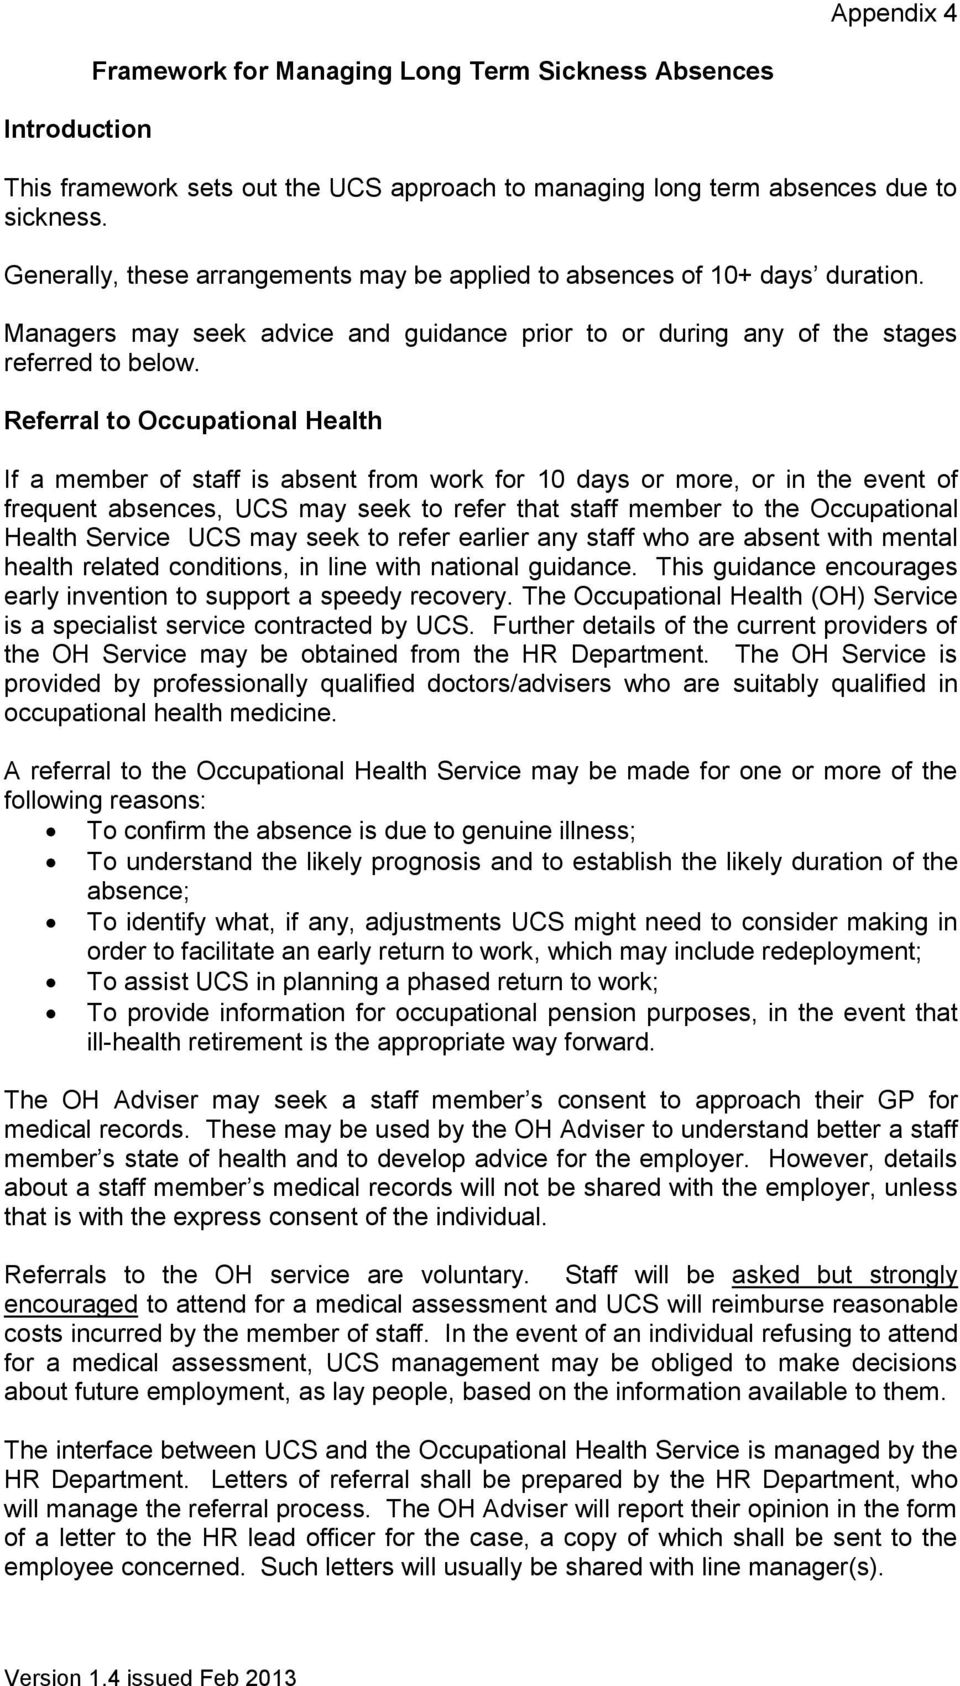 Referral to Occupational Health If a member of staff is absent from work for 10 days or more, or in the event of frequent absences, UCS may seek to refer that staff member to the Occupational Health